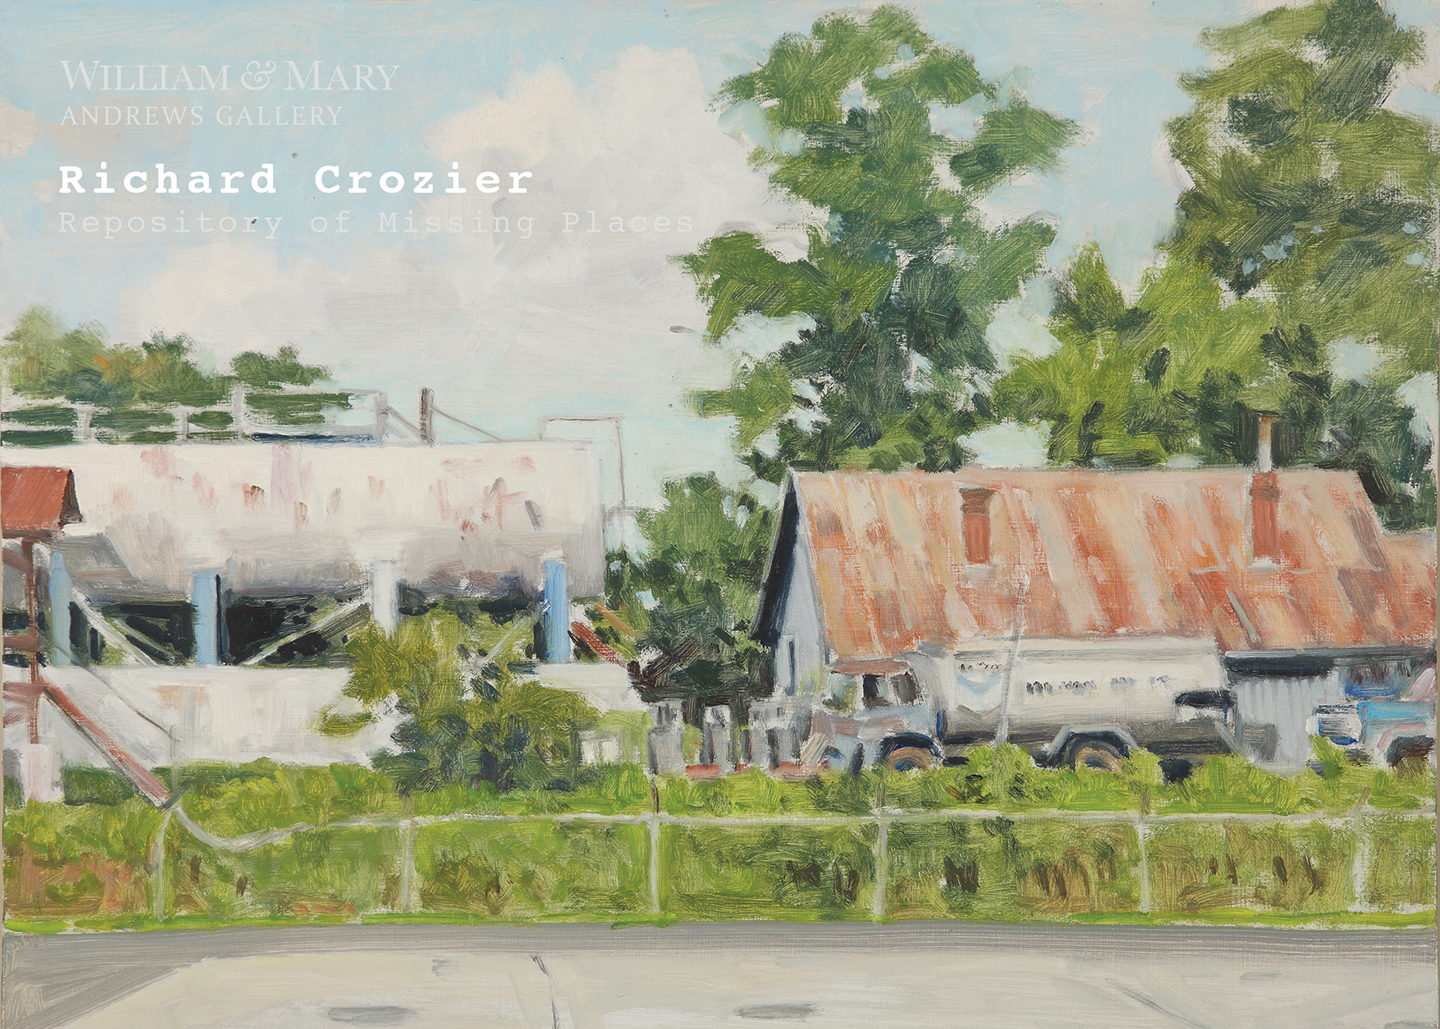 Repository of Missing Places: Richard Crozier's Paintings of Lost and Found Charlottesville  is opening September 8th in the Andrews Gallery at the College of William & Mary.